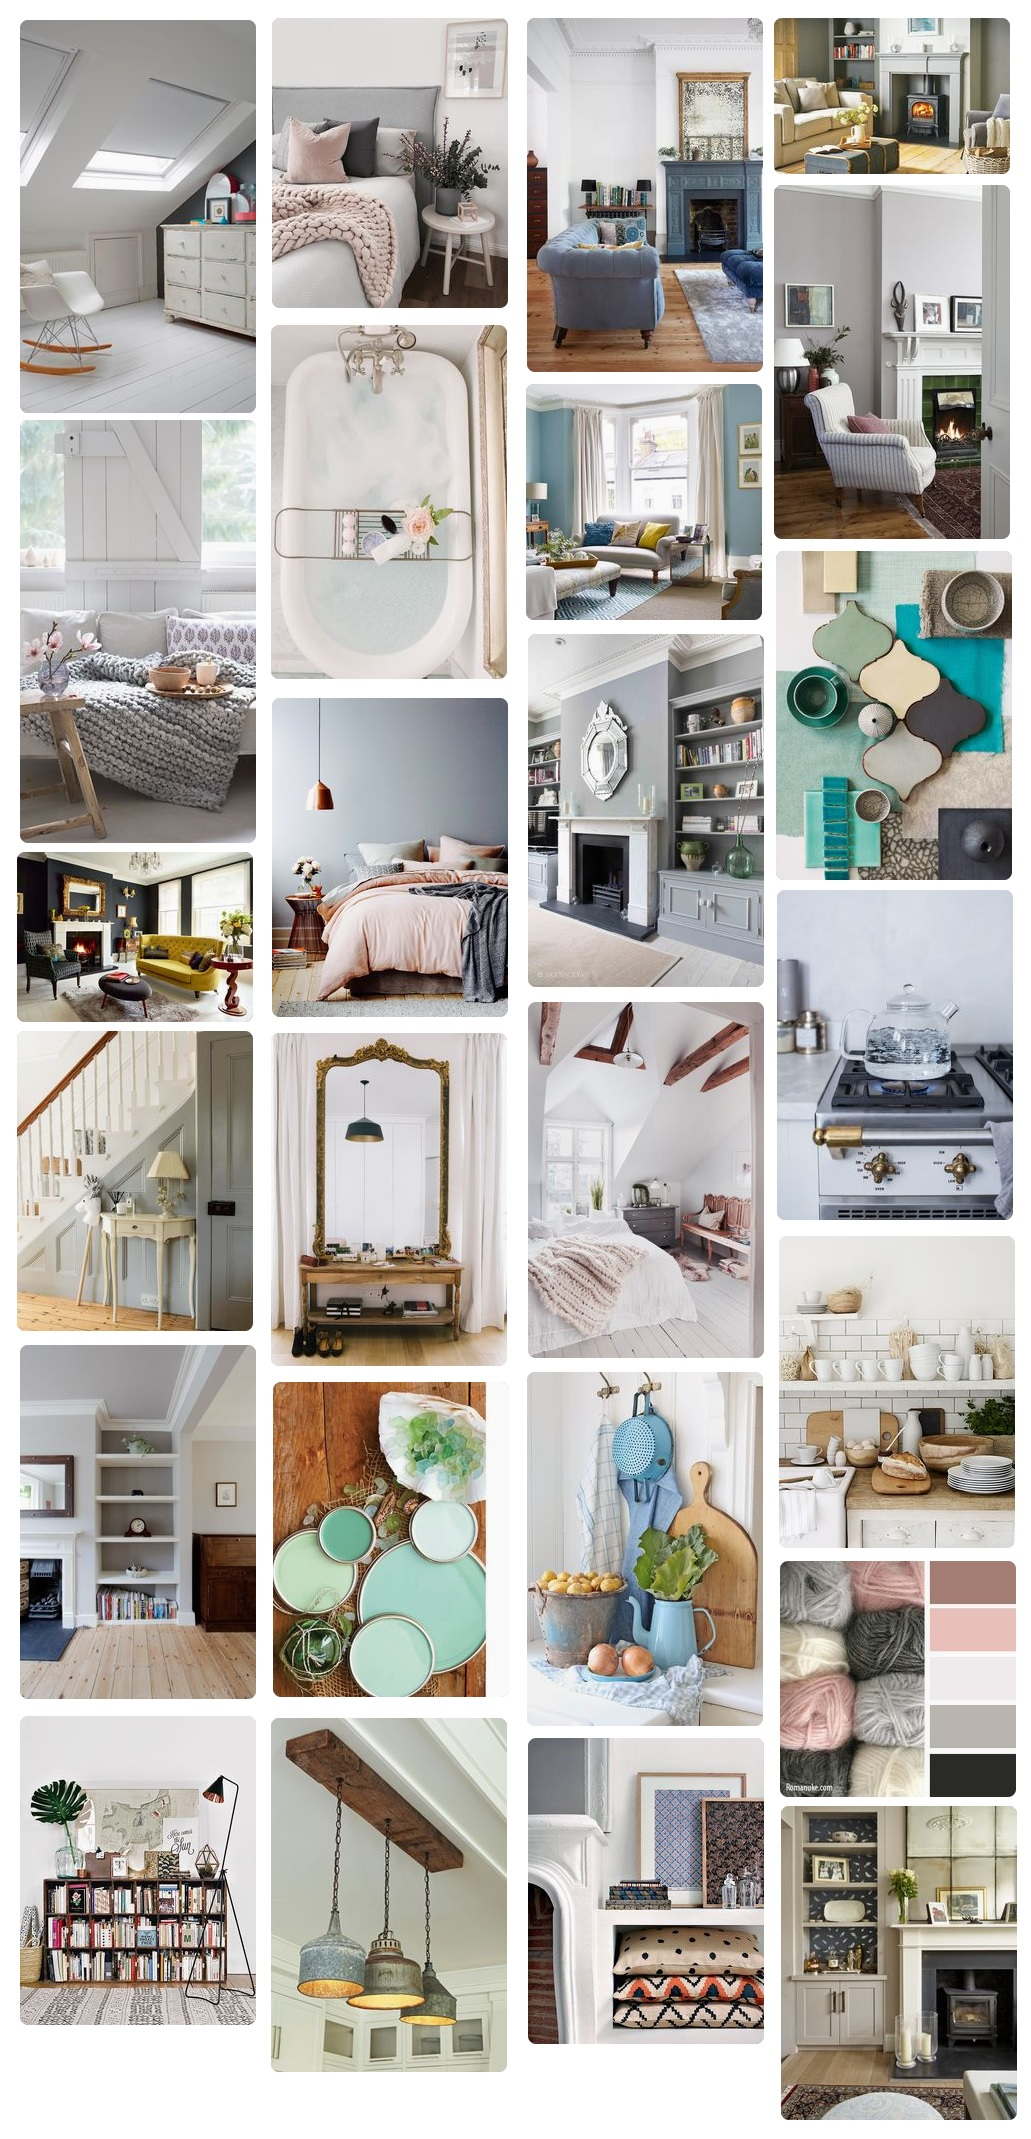 Inspirations d co maison victorienne anglaise style for Decoration maison victorienne